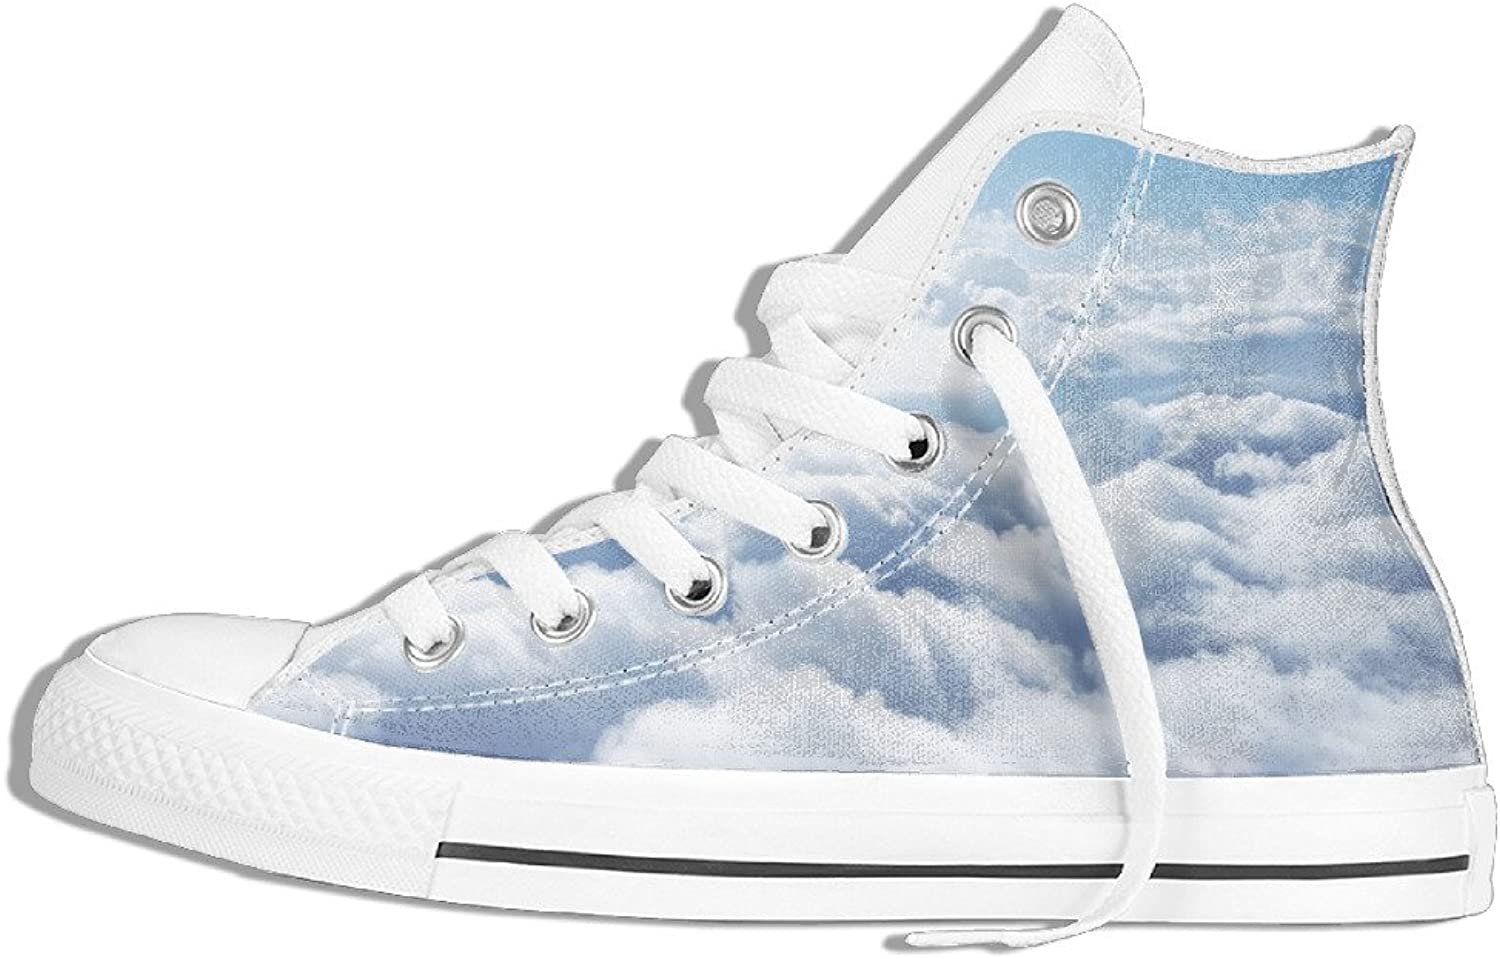 Efbj Cloud Unisex Fashion High Top Sneakers shoes for Men and Women